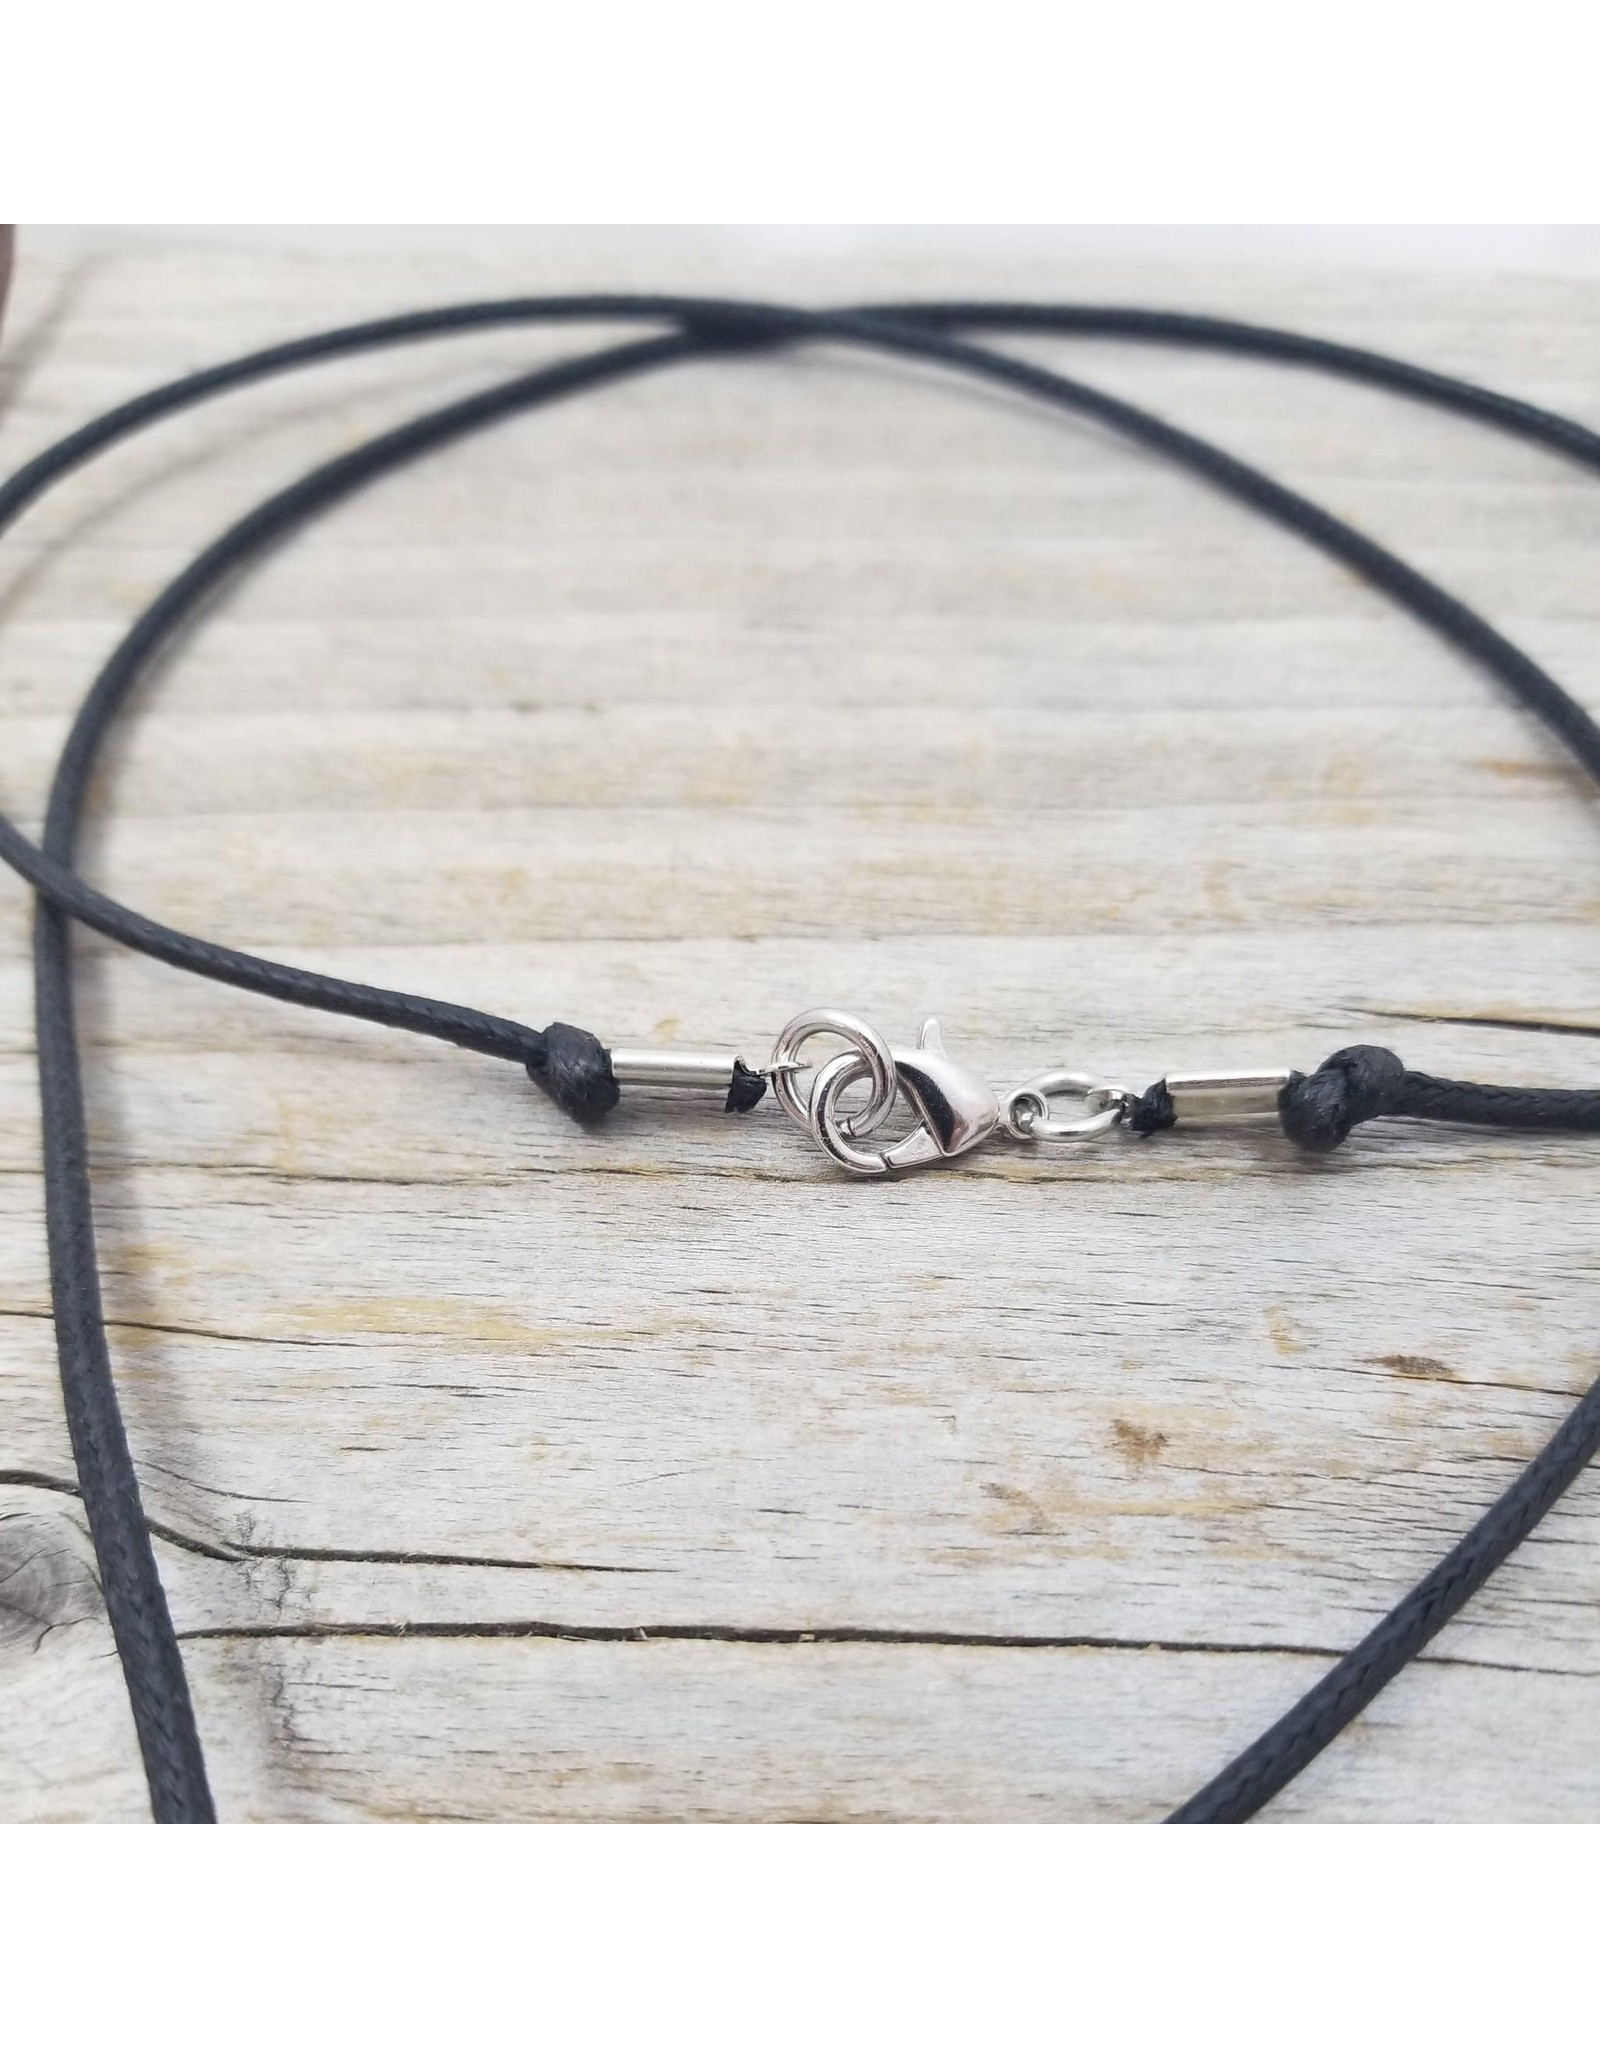 Tiny Tool Pendant Necklace w/black cord by Katrinkles